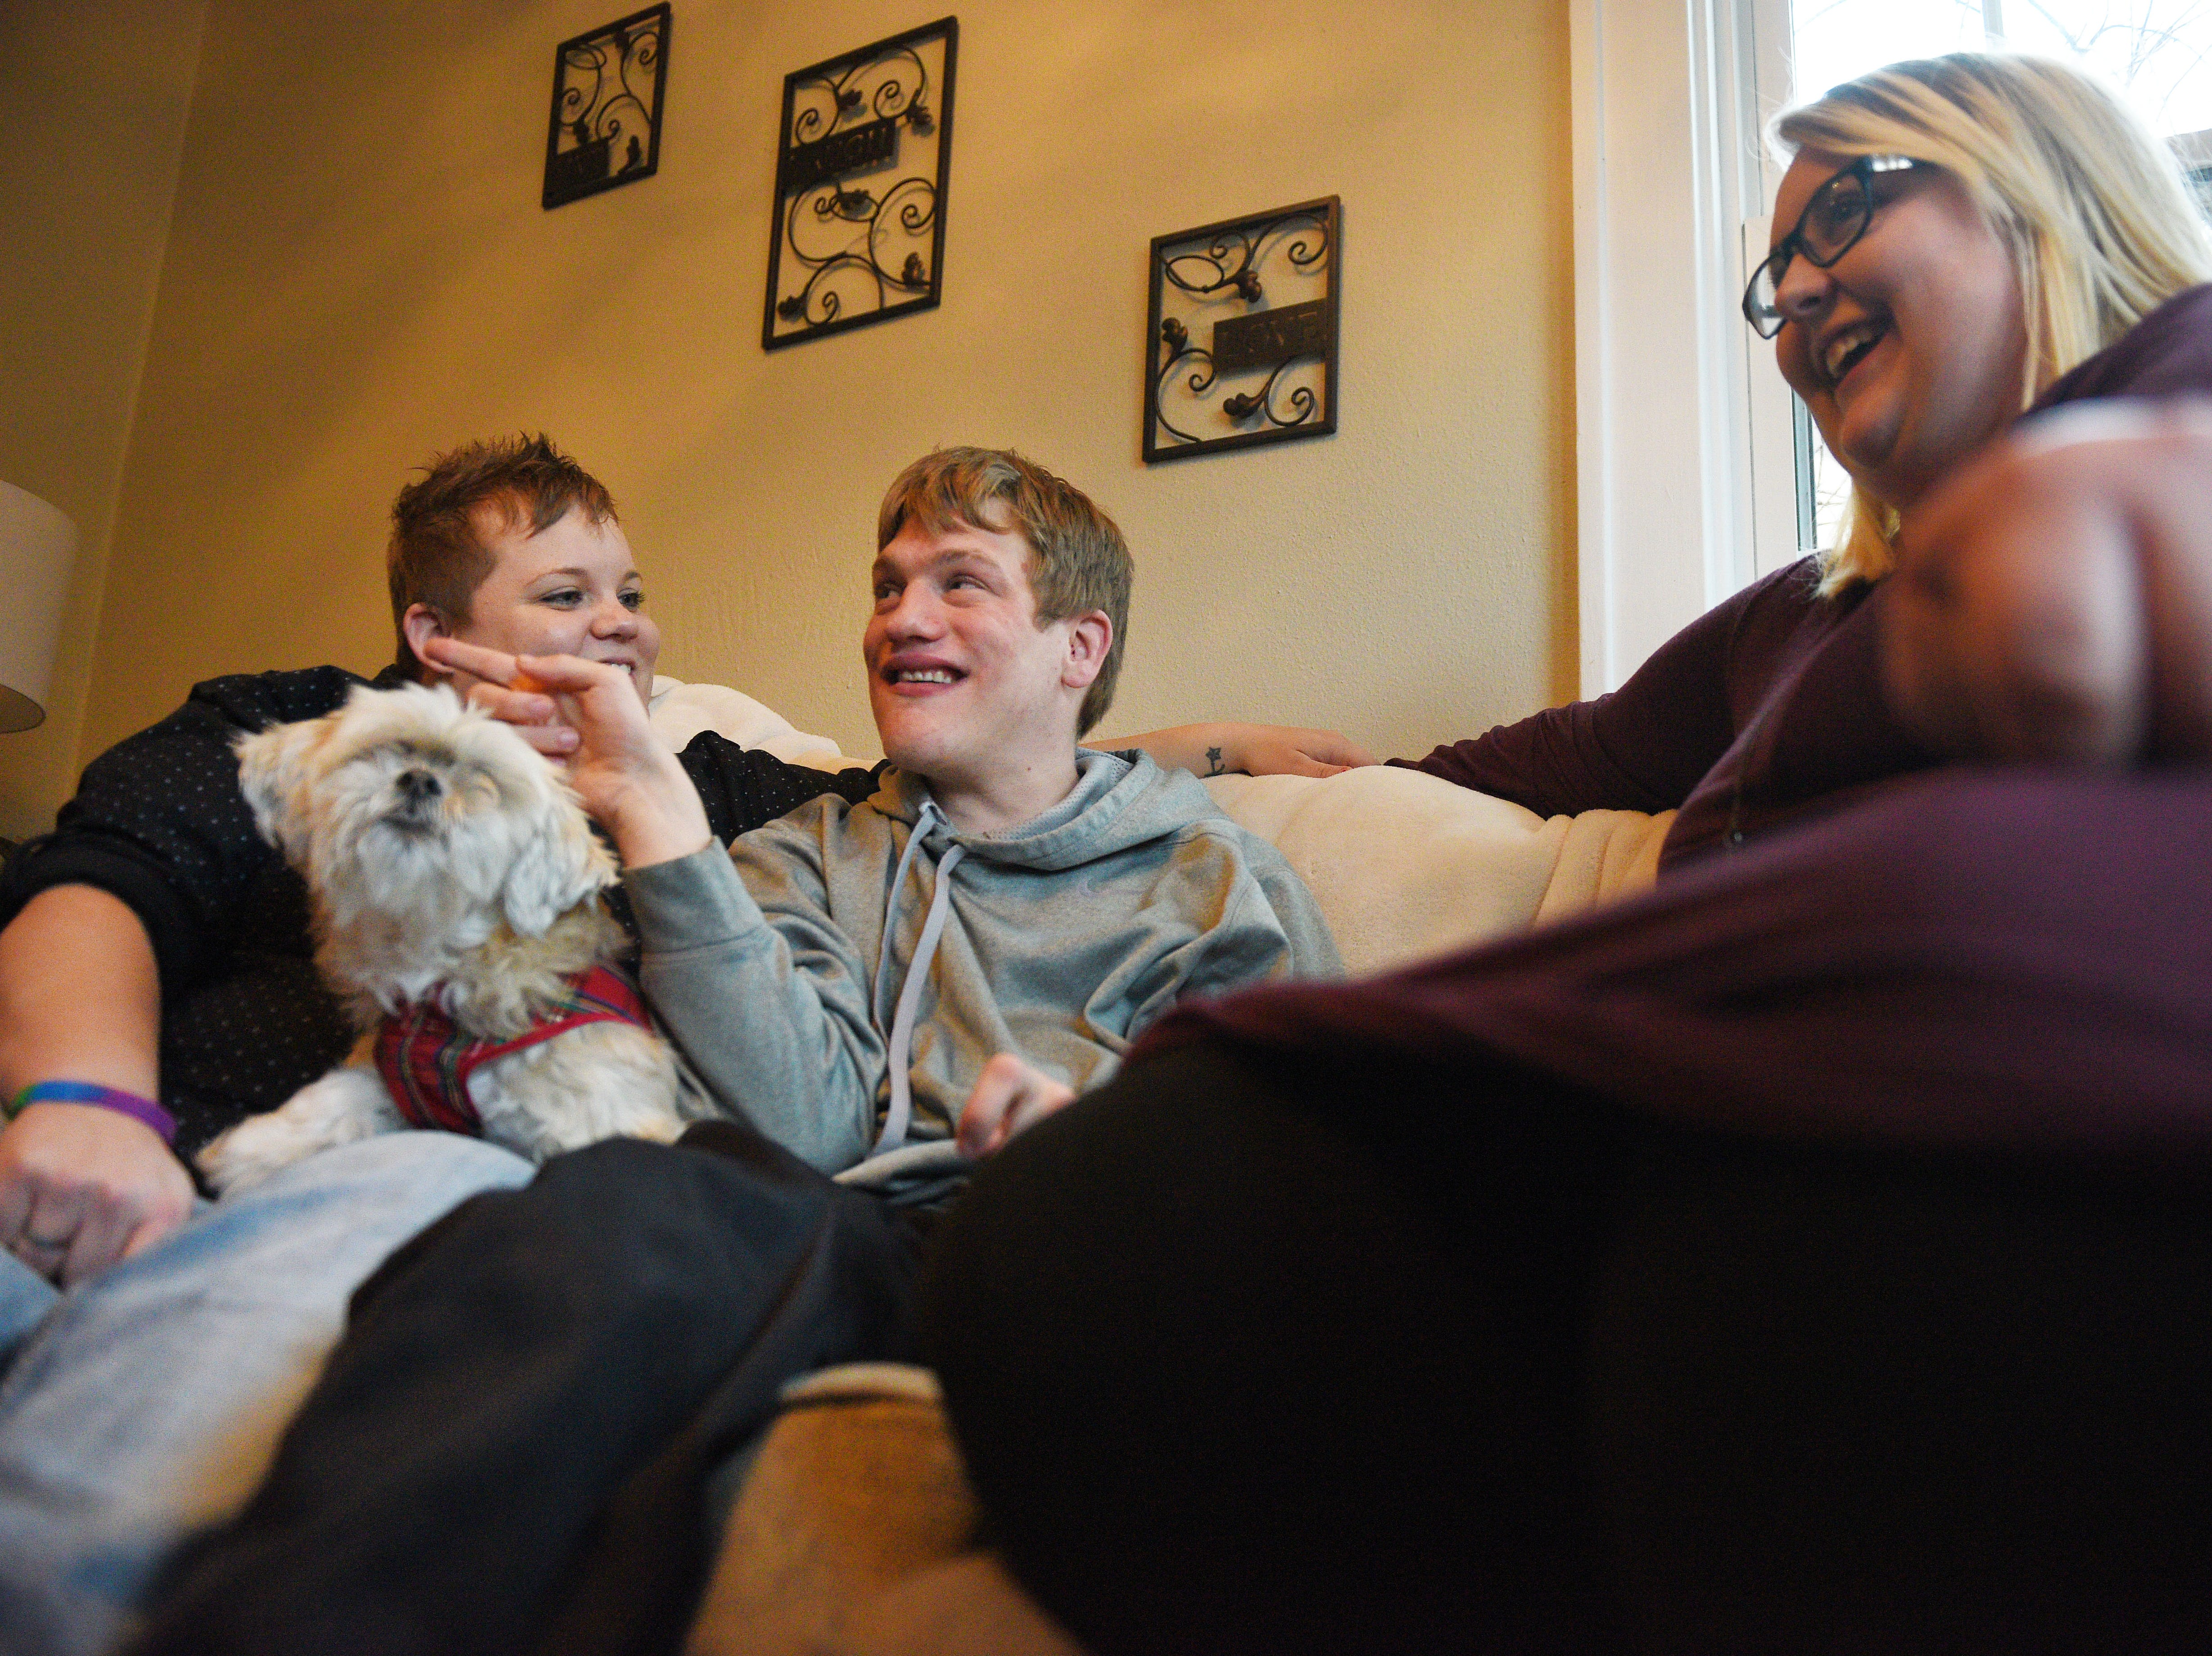 Ben Graff shows how him and his roommates watch tv in their new home Wednesday, Nov. 7, in Sioux Falls. He lives with Shared Living Provider Kayla Harris and roommate Jenna Askelson. Harris' dog, Chu Chi, also lives at the home. Harris and Askelson provide care for Ben daily so that he can live independently from his parents Debbie and Neil Graff.